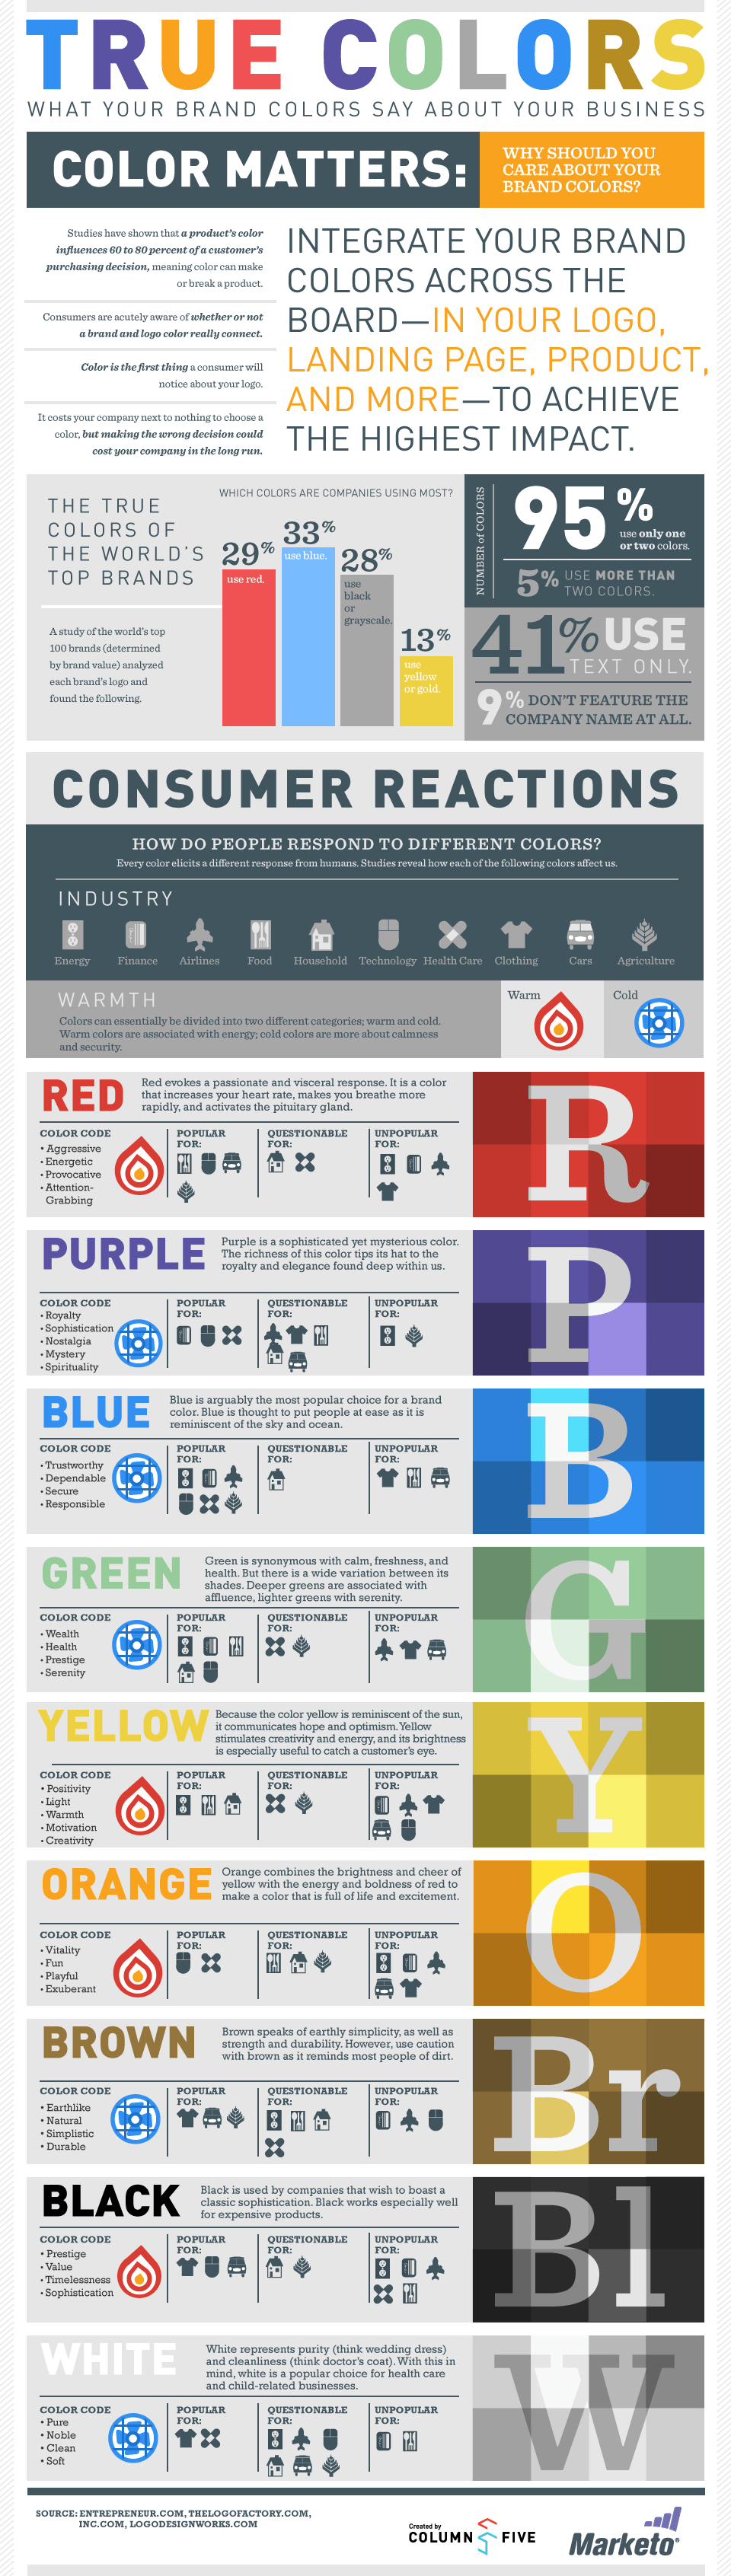 Logo Color Meanings